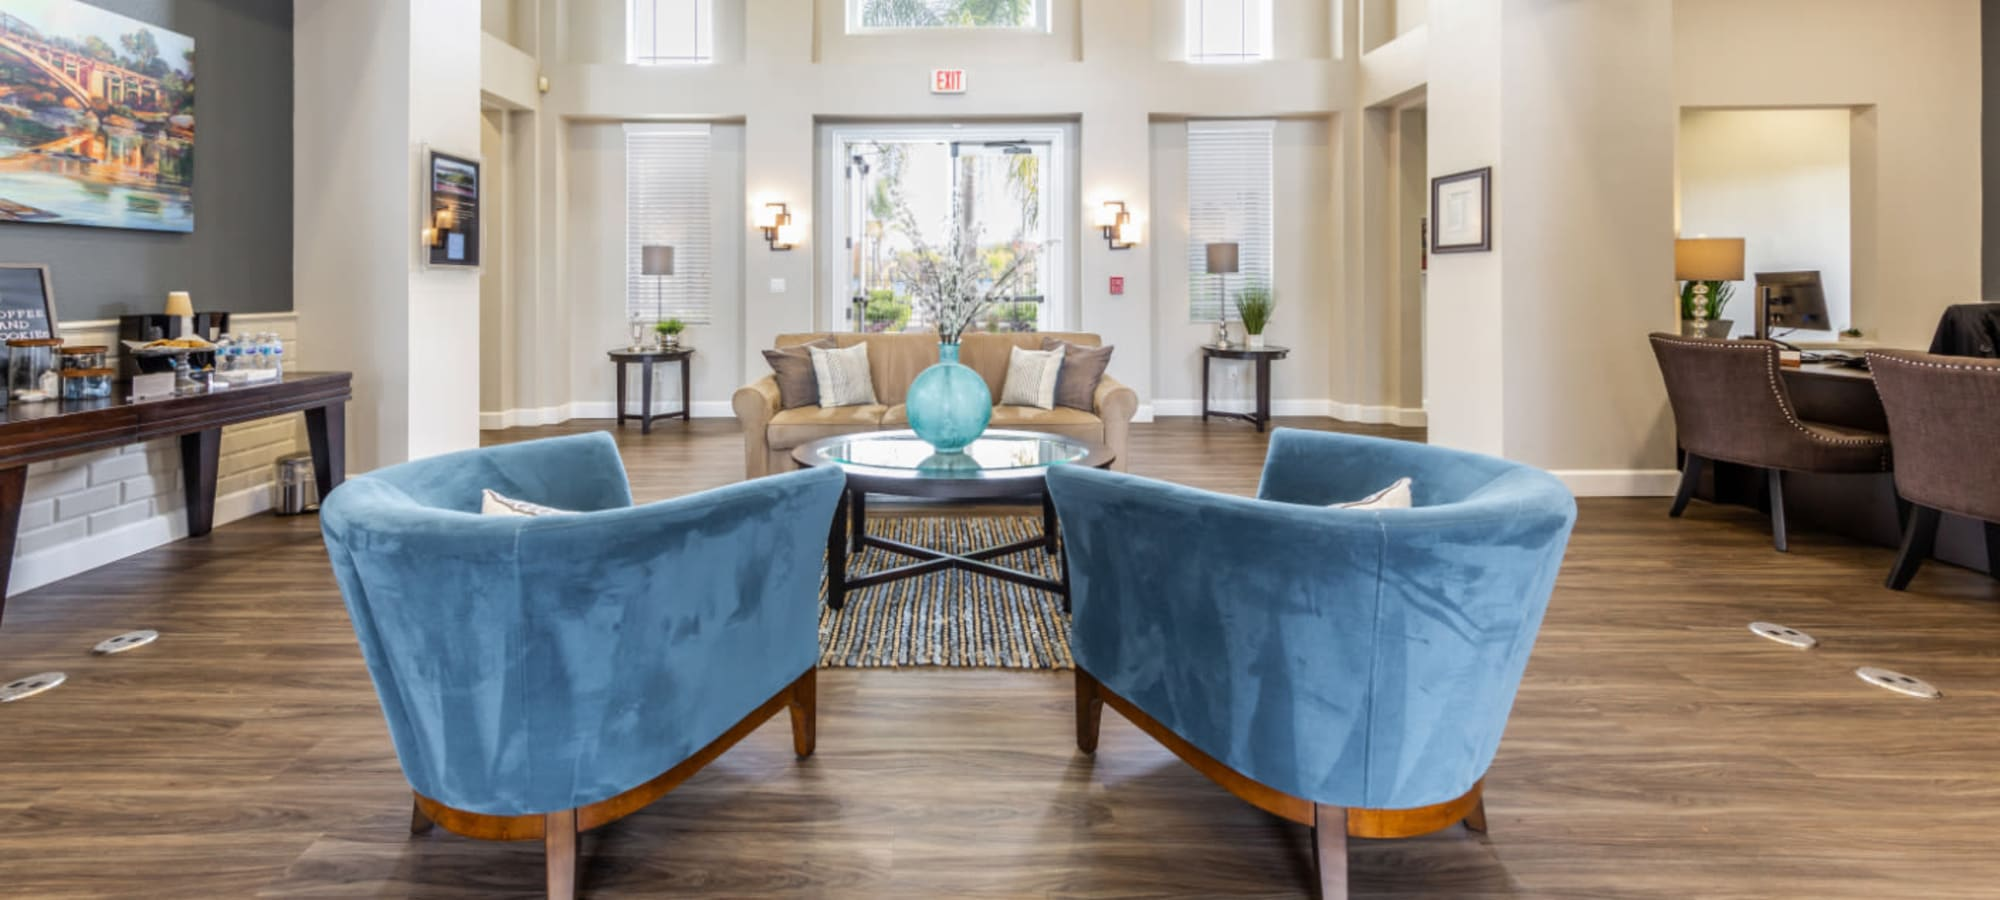 Apply to live at The Fairmont at Willow Creek in Folsom, California